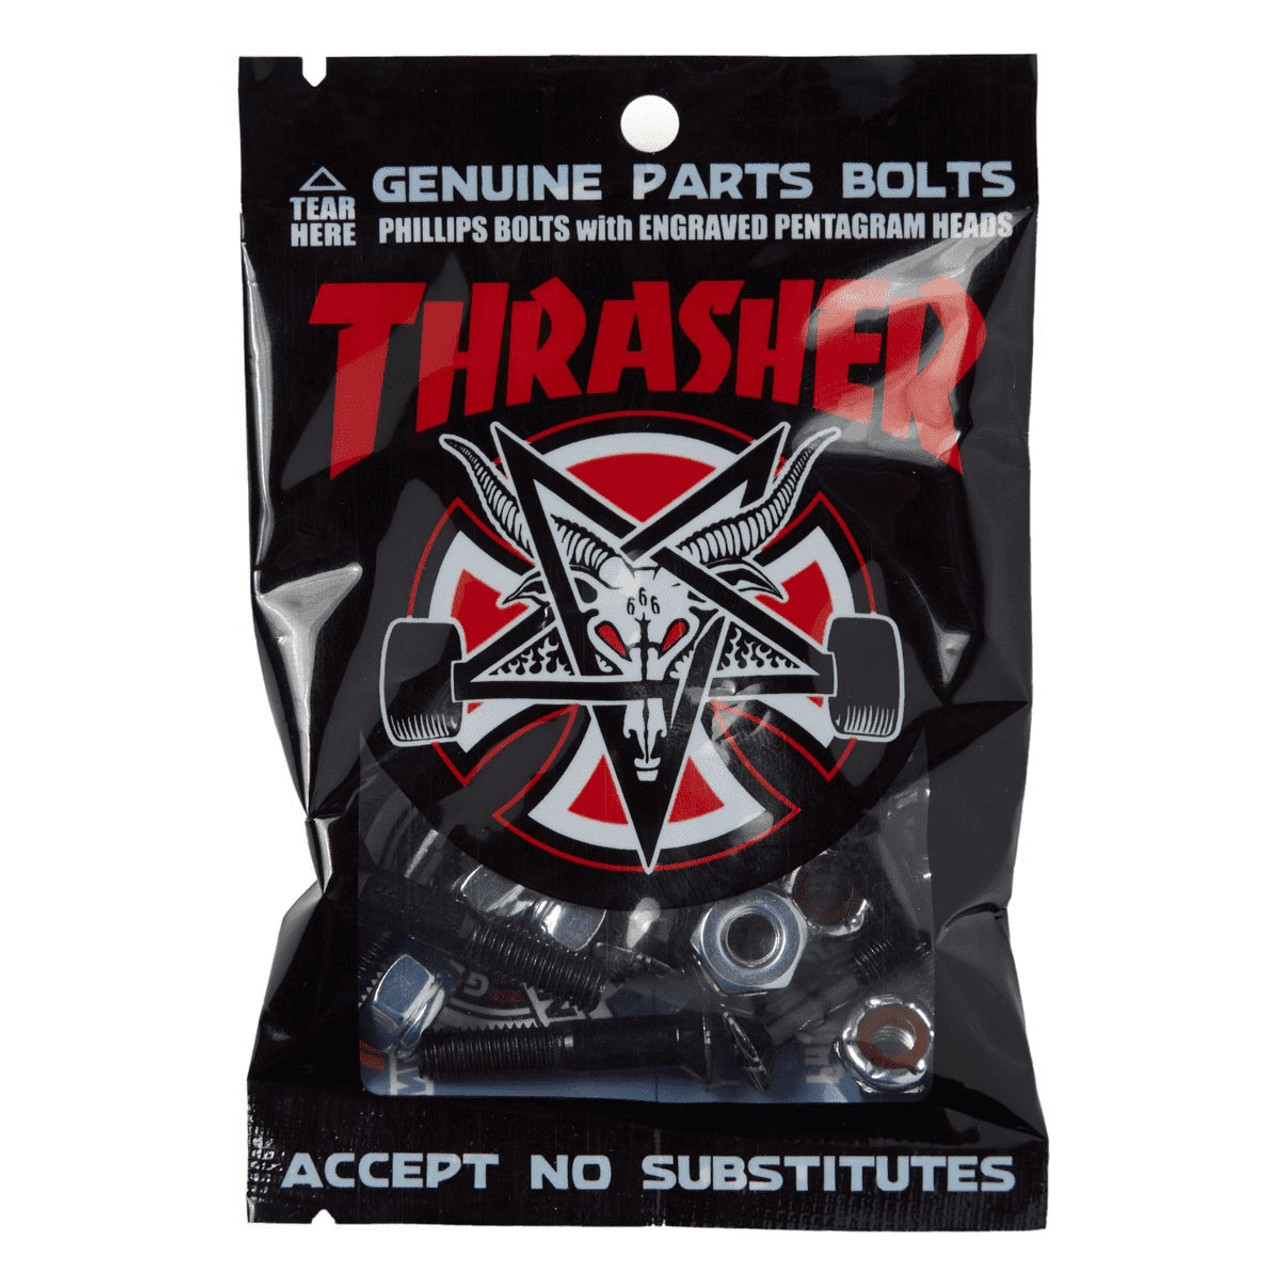 51191826189a Independent X Thrasher Bolts Black Silver 1